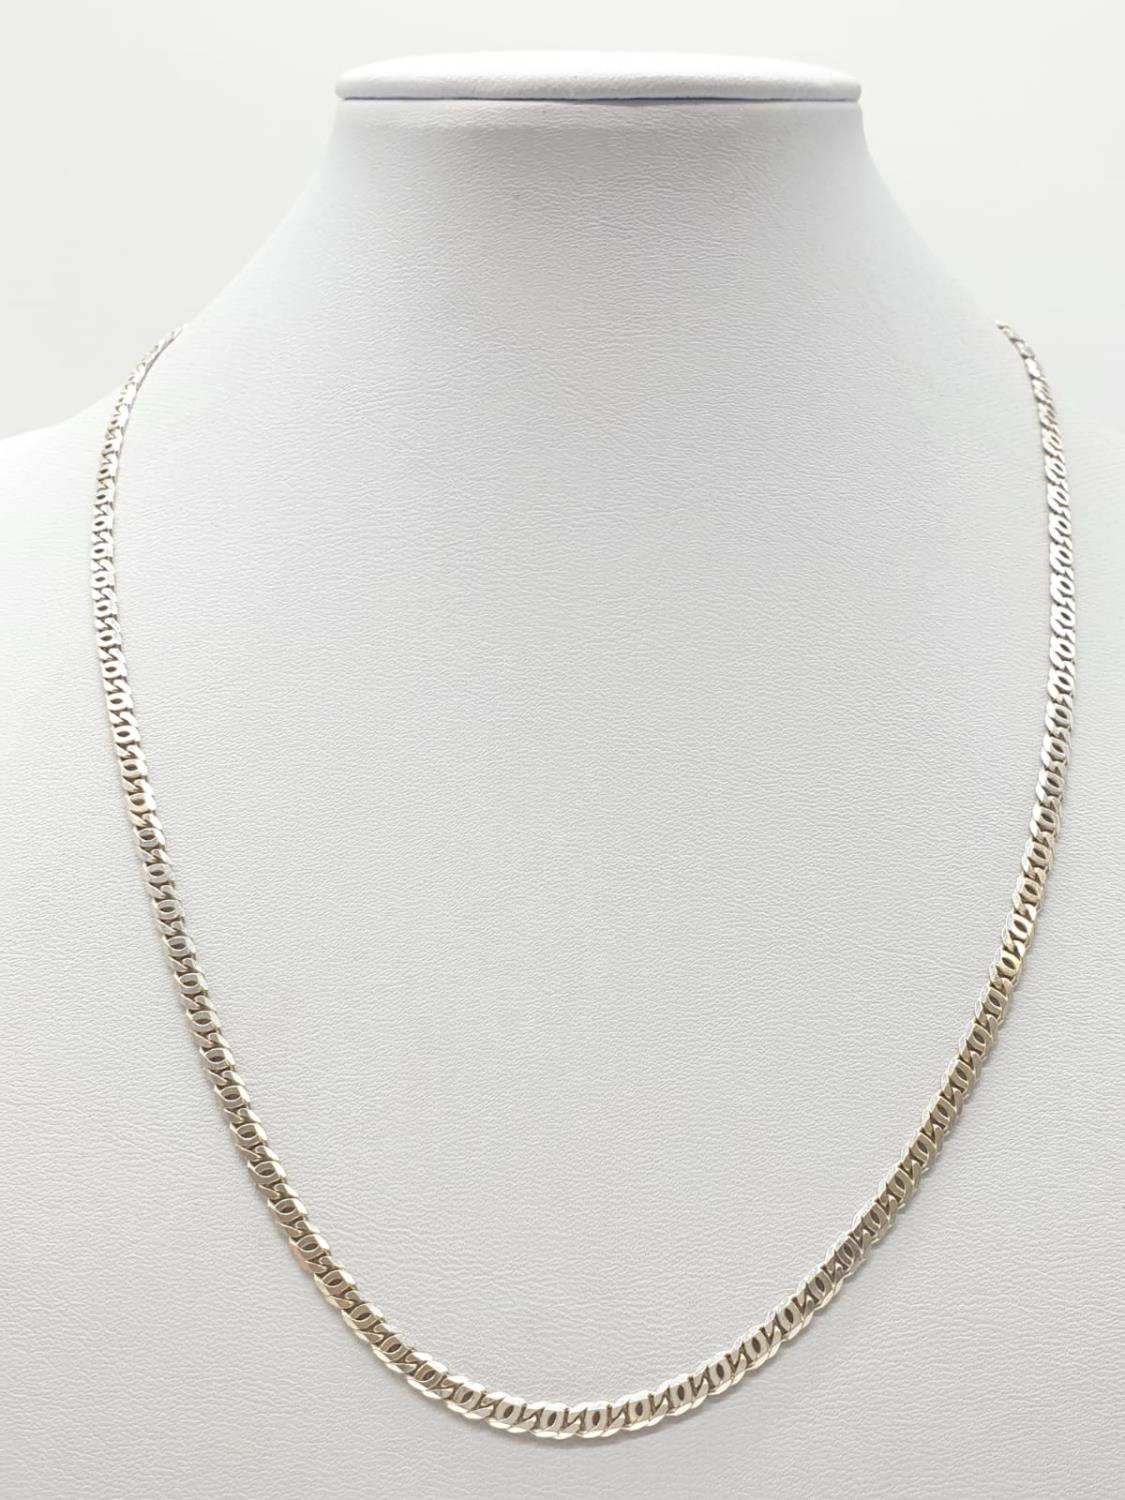 Silver Anchor style chain 10g weight and 44cm long approx